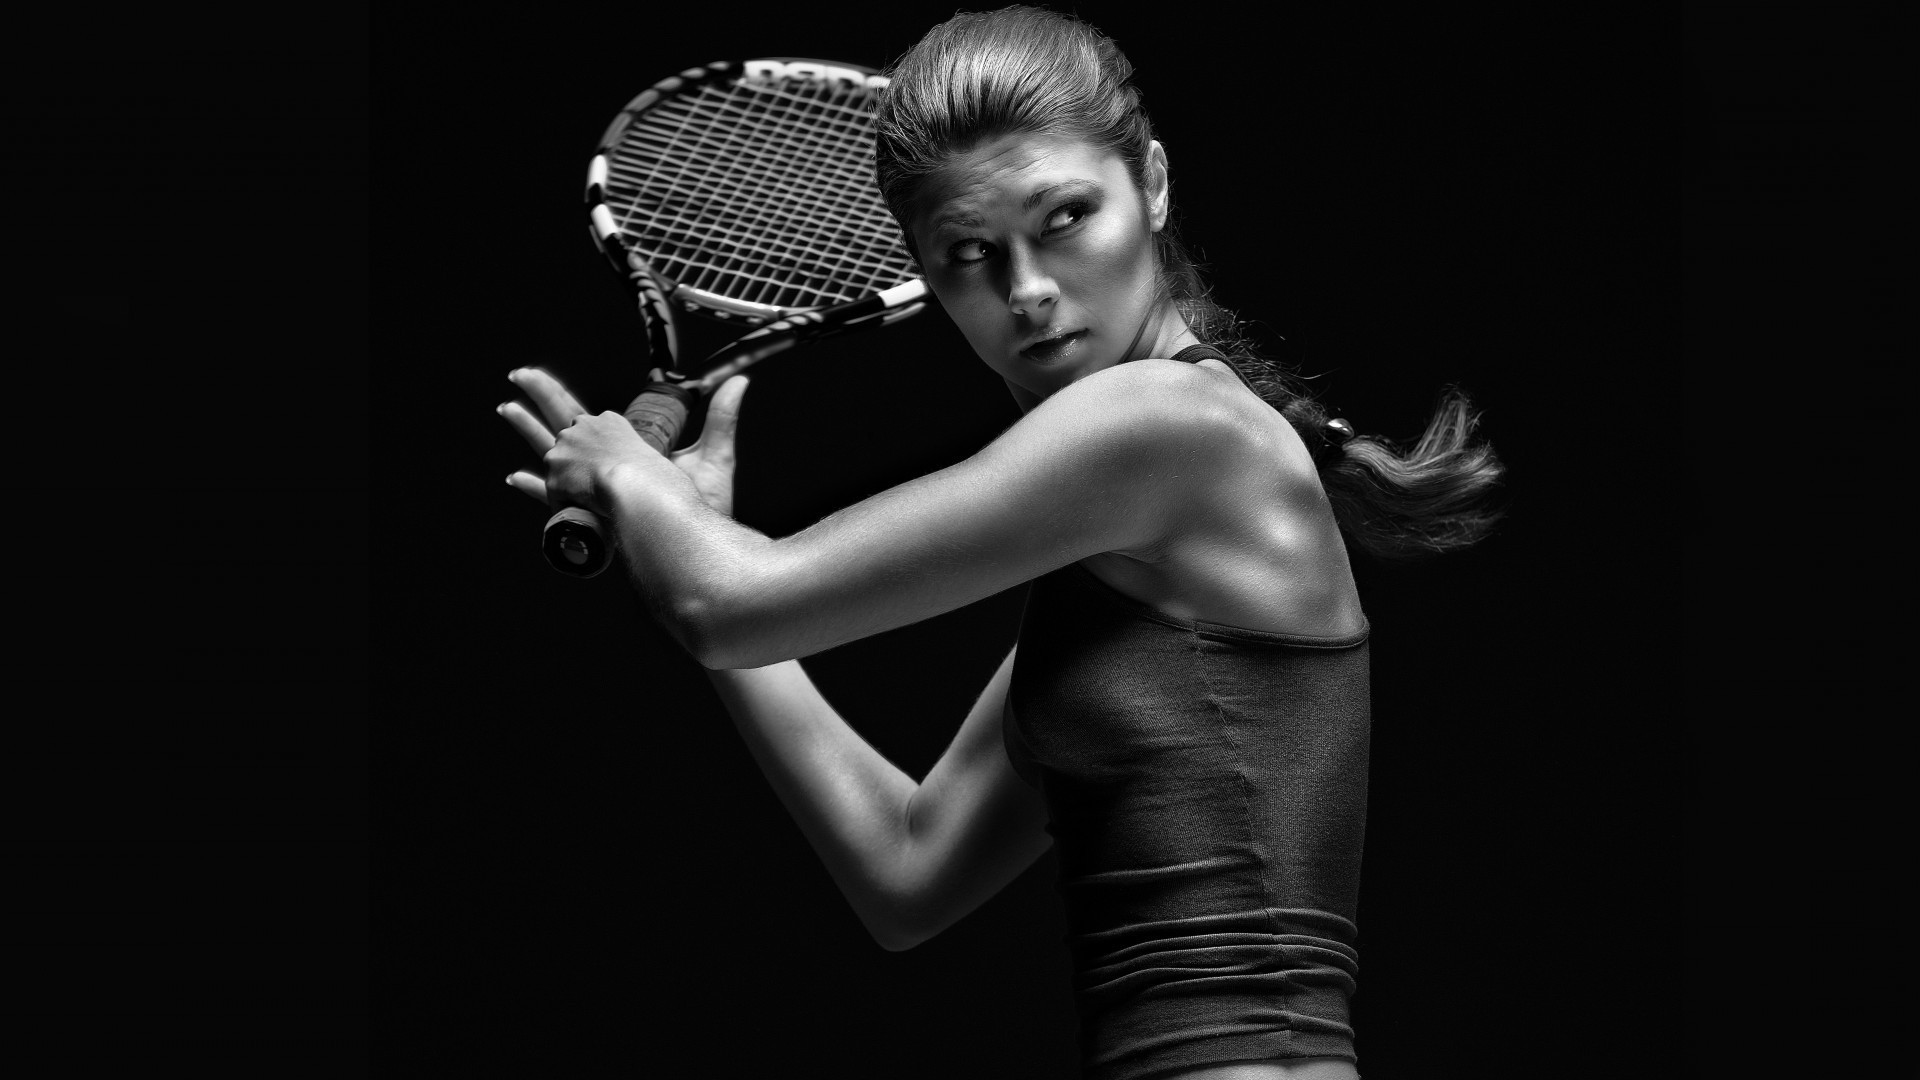 Sports Wallpapers For Android: Great Tennis. Android Wallpapers For Free